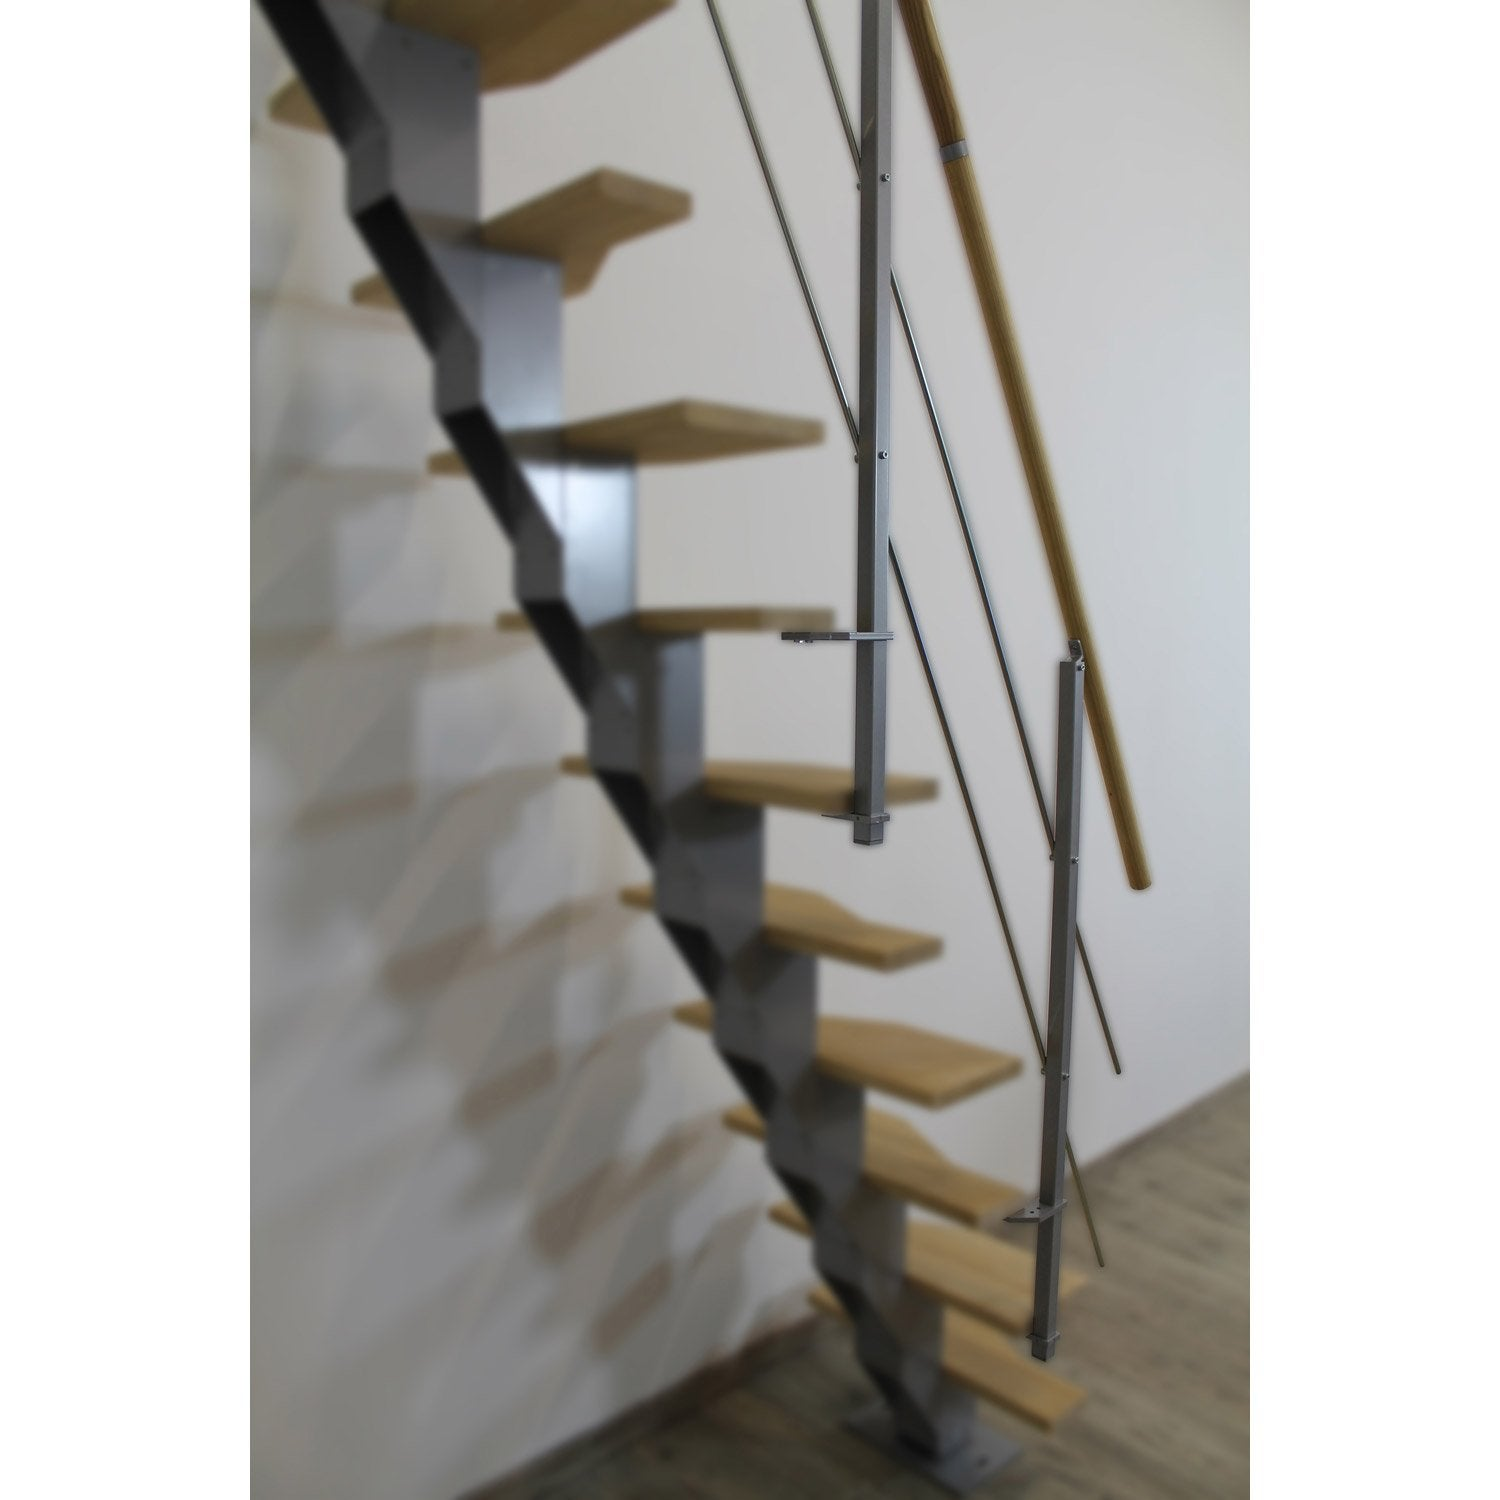 Plaque de protection en verre synth tique pour escalier for Kit de renovation escalier leroy merlin